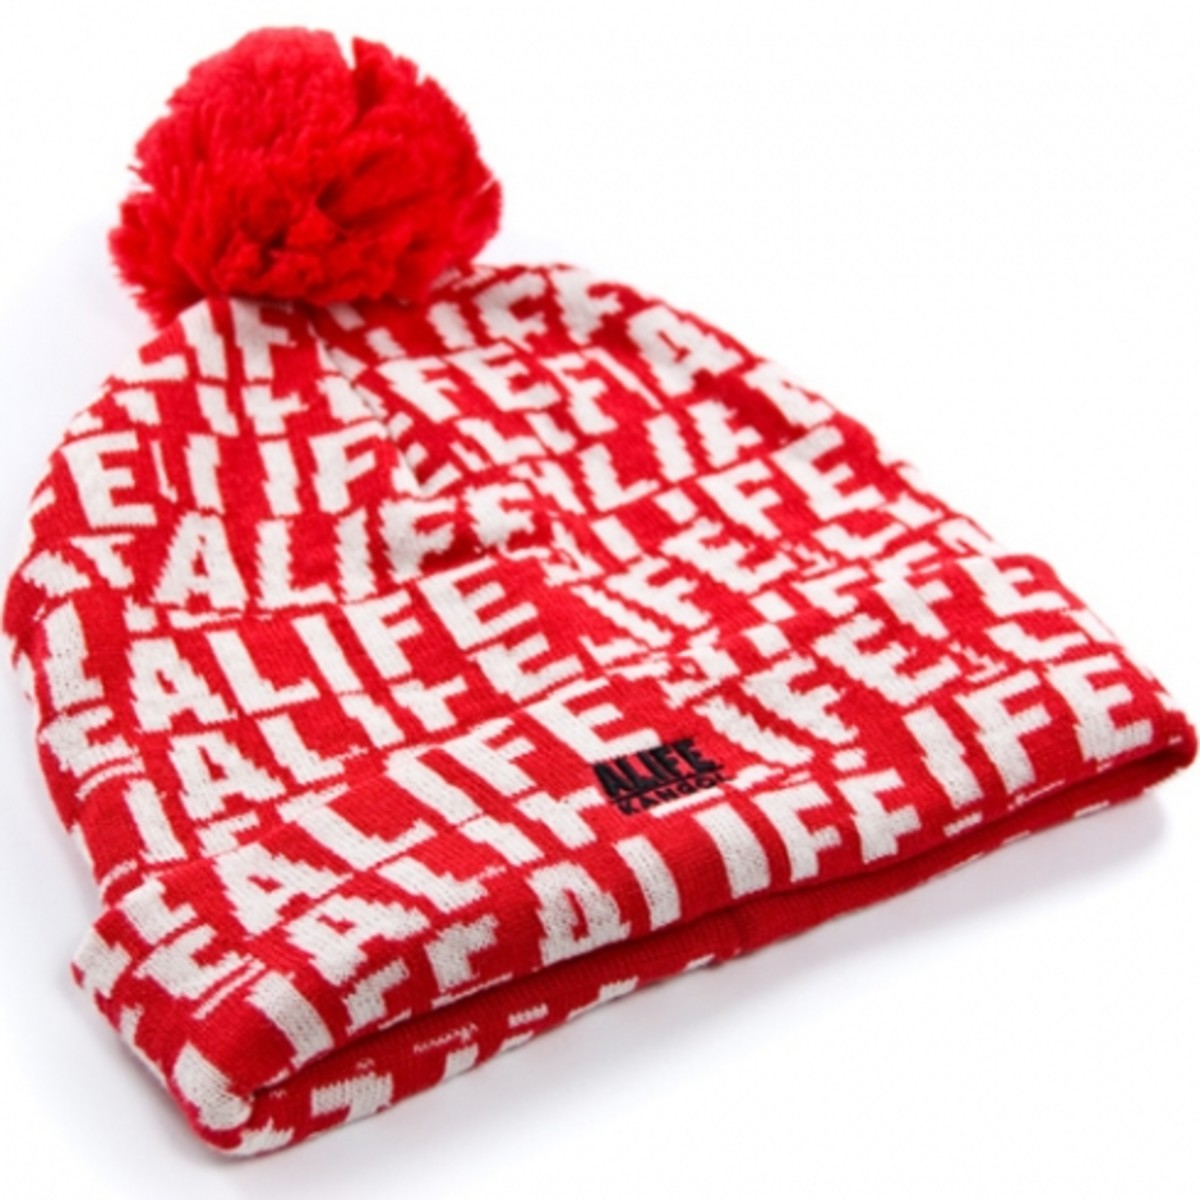 ALIFE x Kangol - Stuck Up Pom Pom - Red